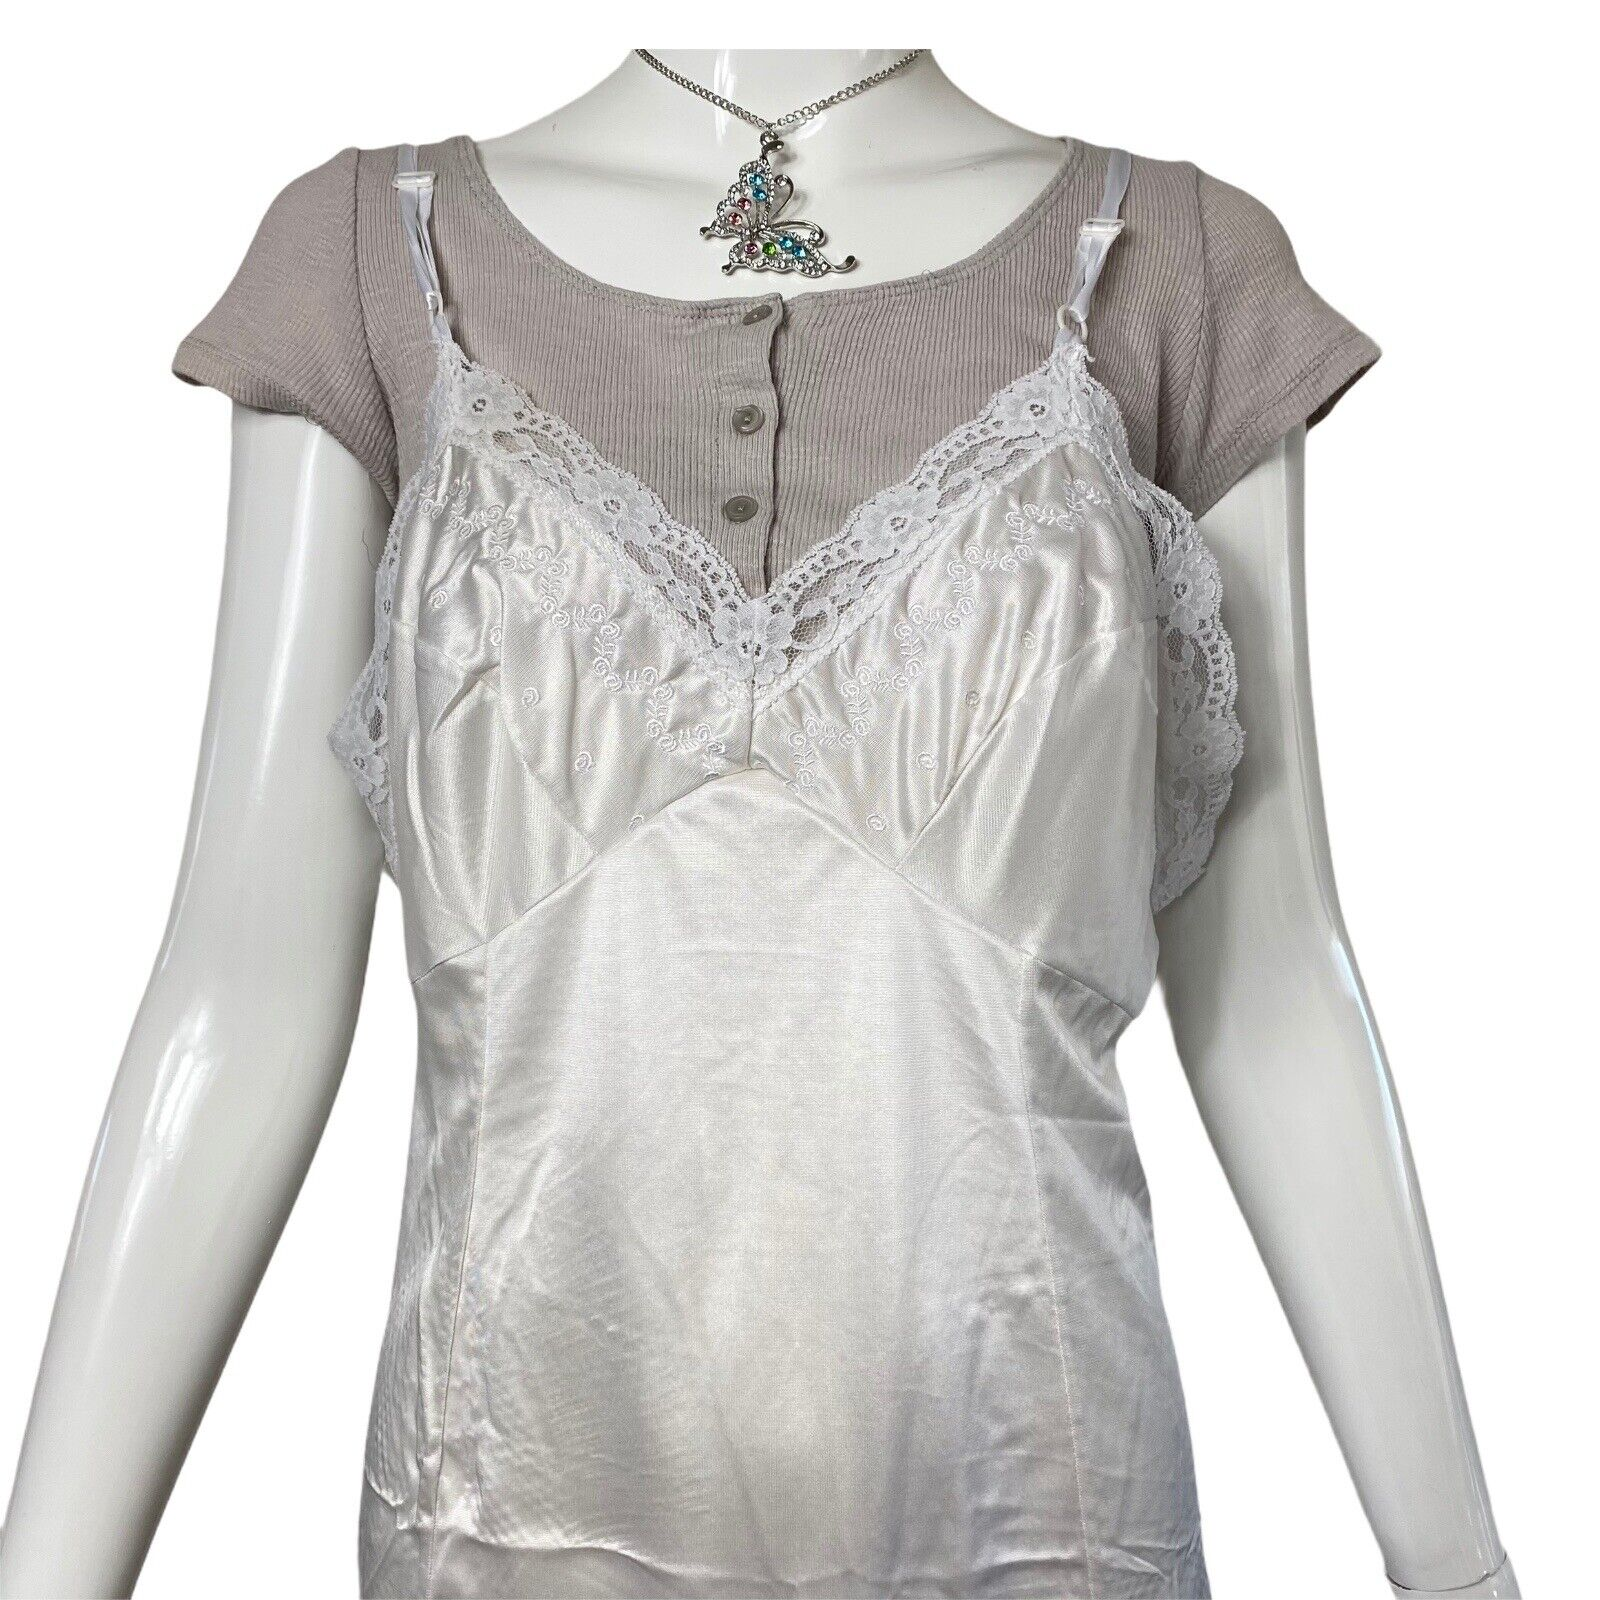 Fairycore Grunge Ribbed Crop Top Y2k 90s Aesthetic - image 6